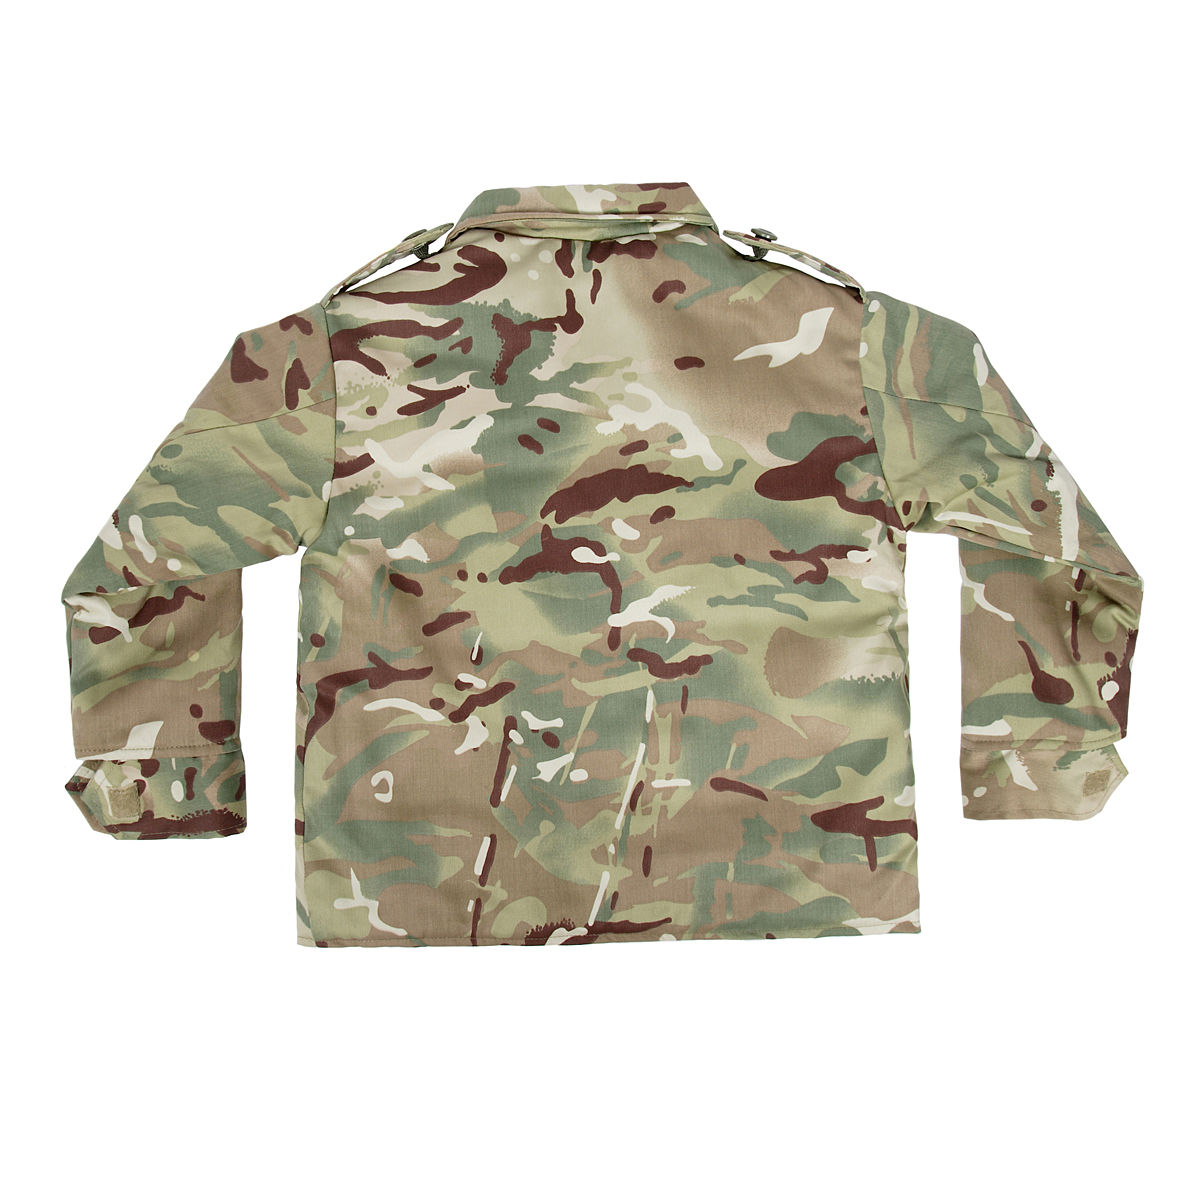 Shop Kids' Hunting Clothing & Camo Clothing for all hunting seasons. Find Camo Shirts, Hunting Jackets, Coveralls & more from top brands like RedHead.